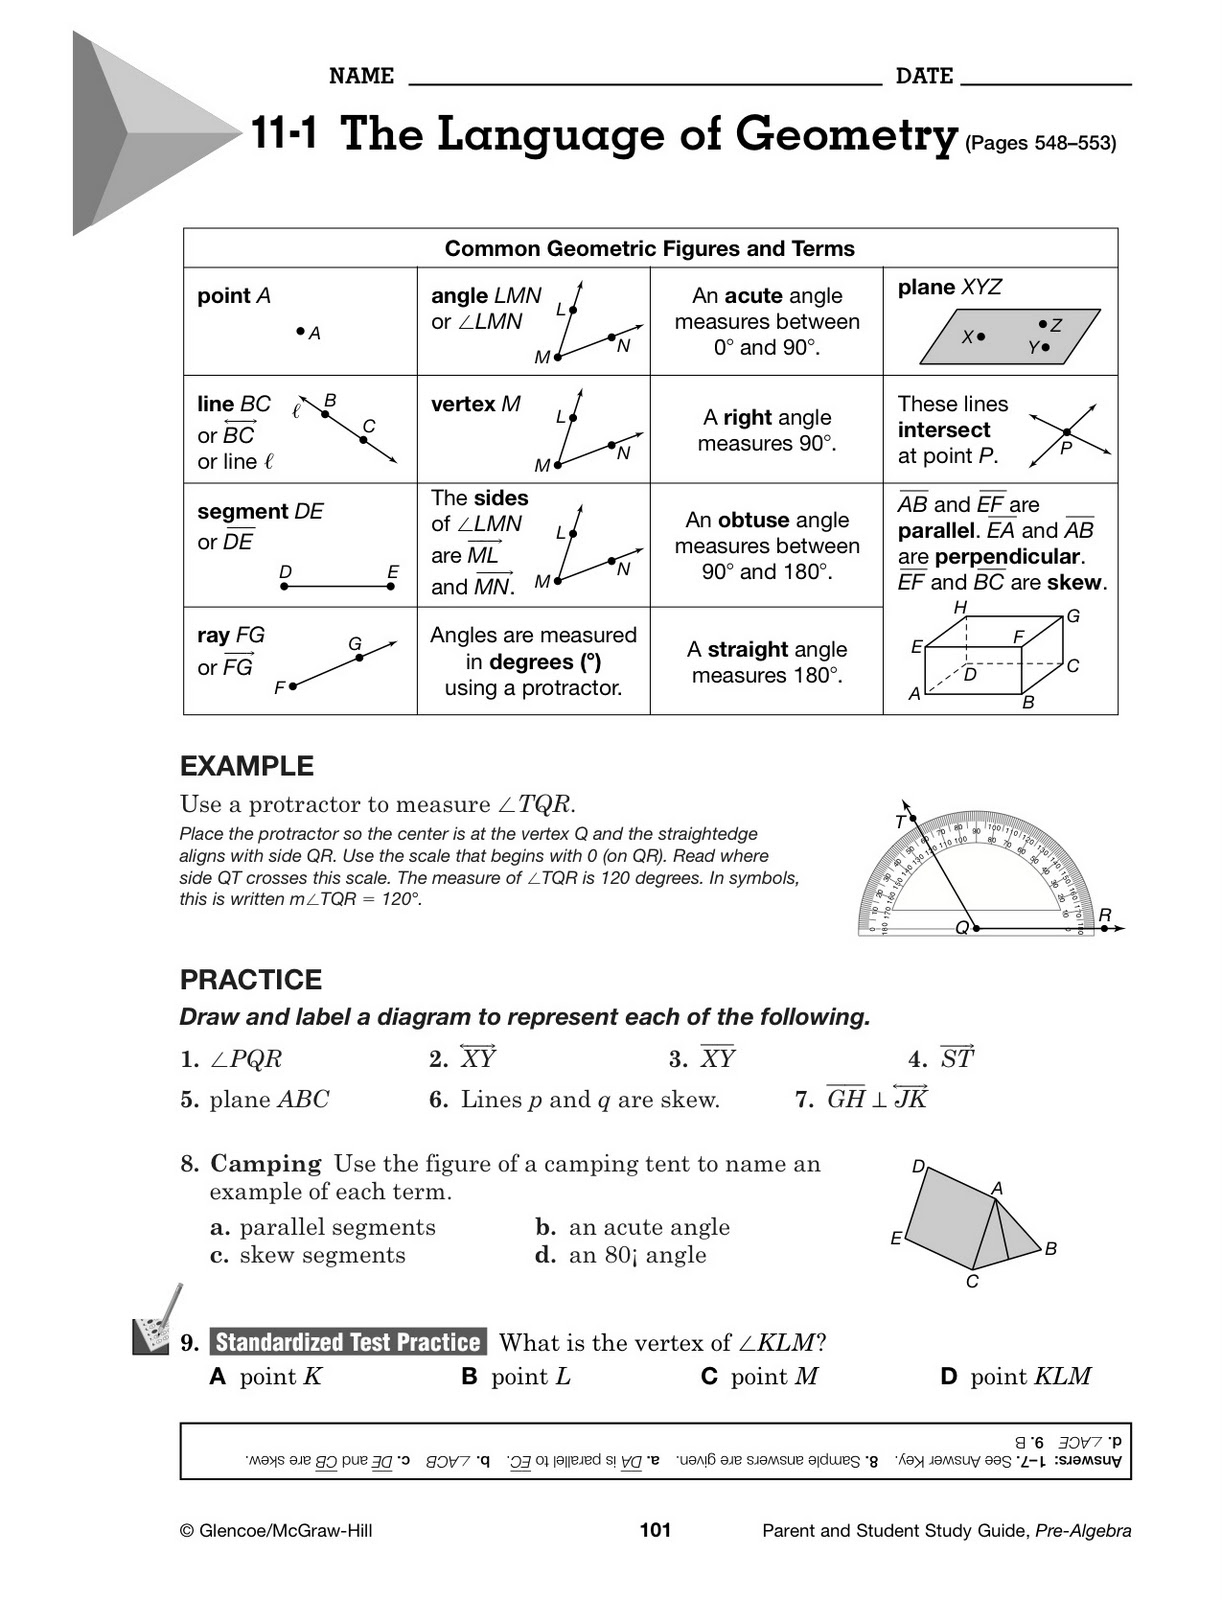 Study Guide With Flashcards Math Wordfind Homework Helper And Book Images